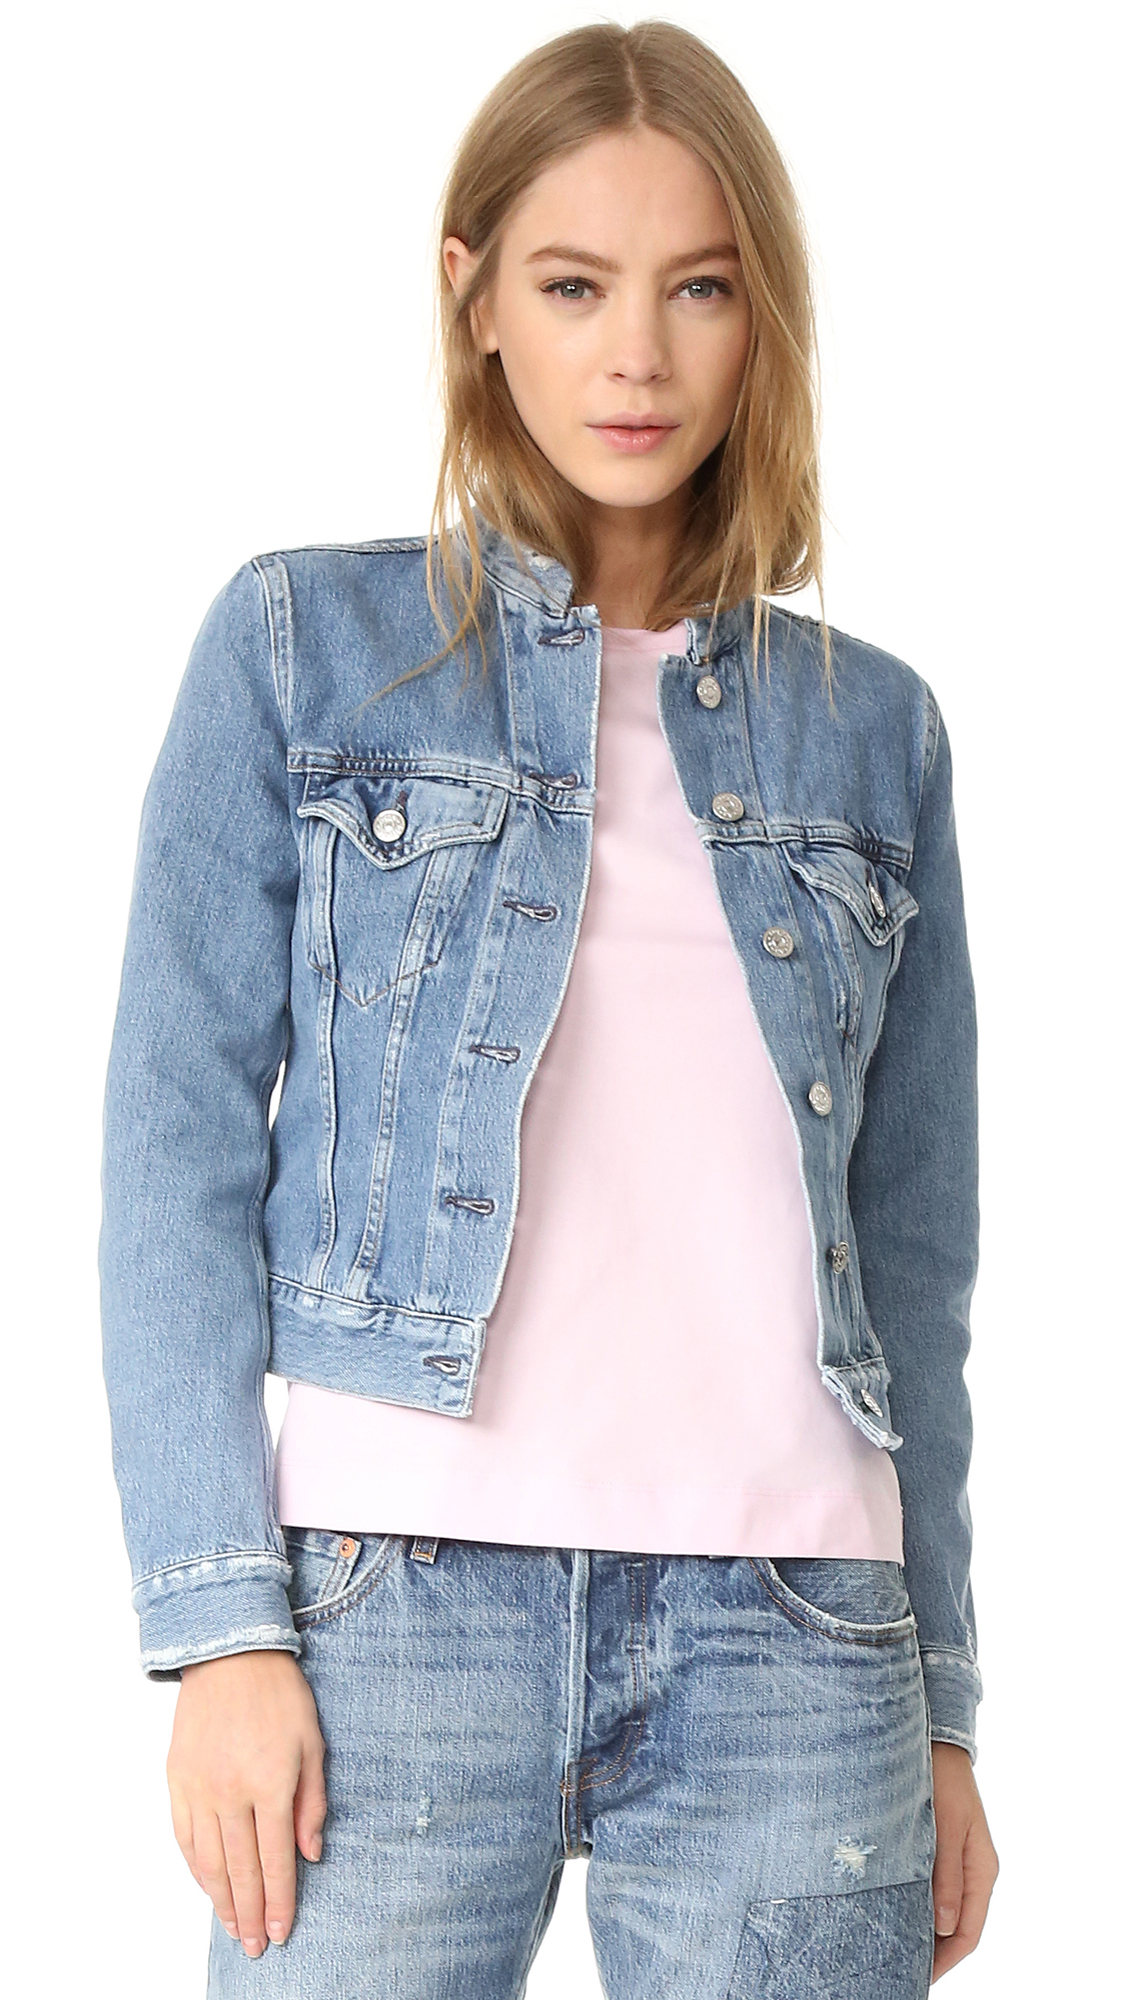 Acne Studios Top Frayed Denim Jacket - Indigo Fray at Shopbop